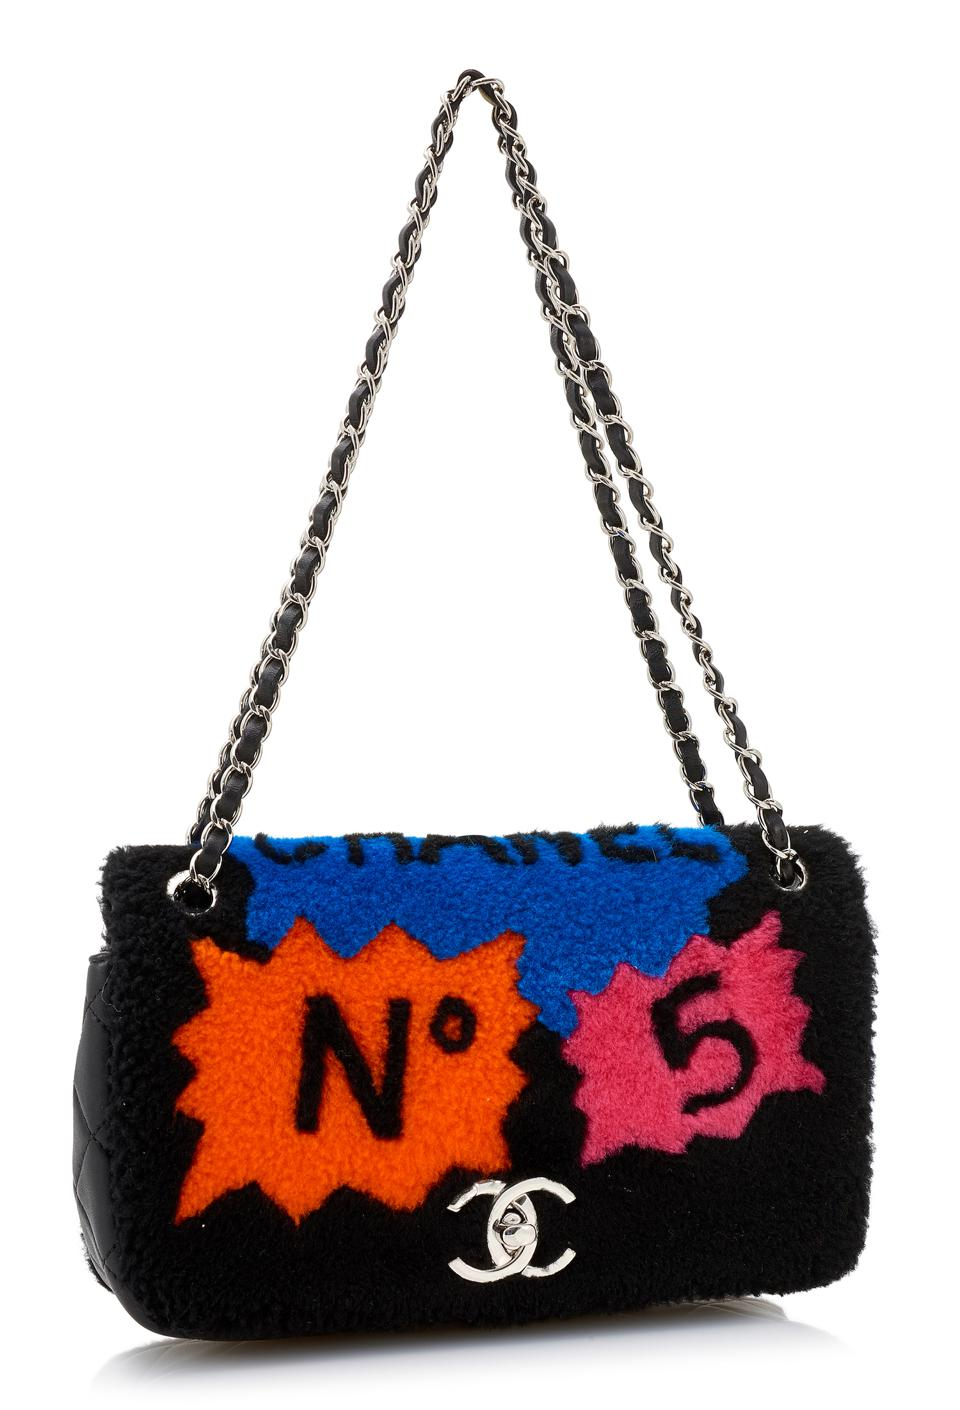 Shearling Pop Art-style Chanel shoulder bag, Fall 2014, ($1,650 - $2,750)